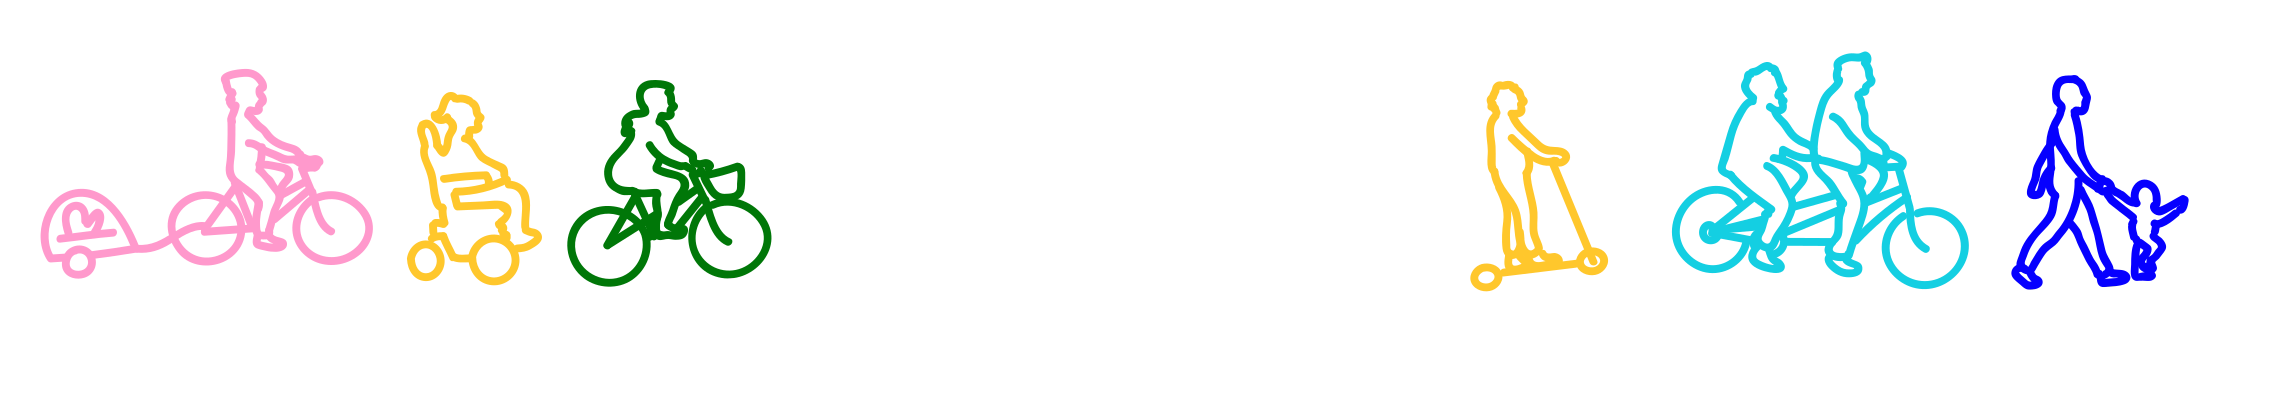 OurStreets